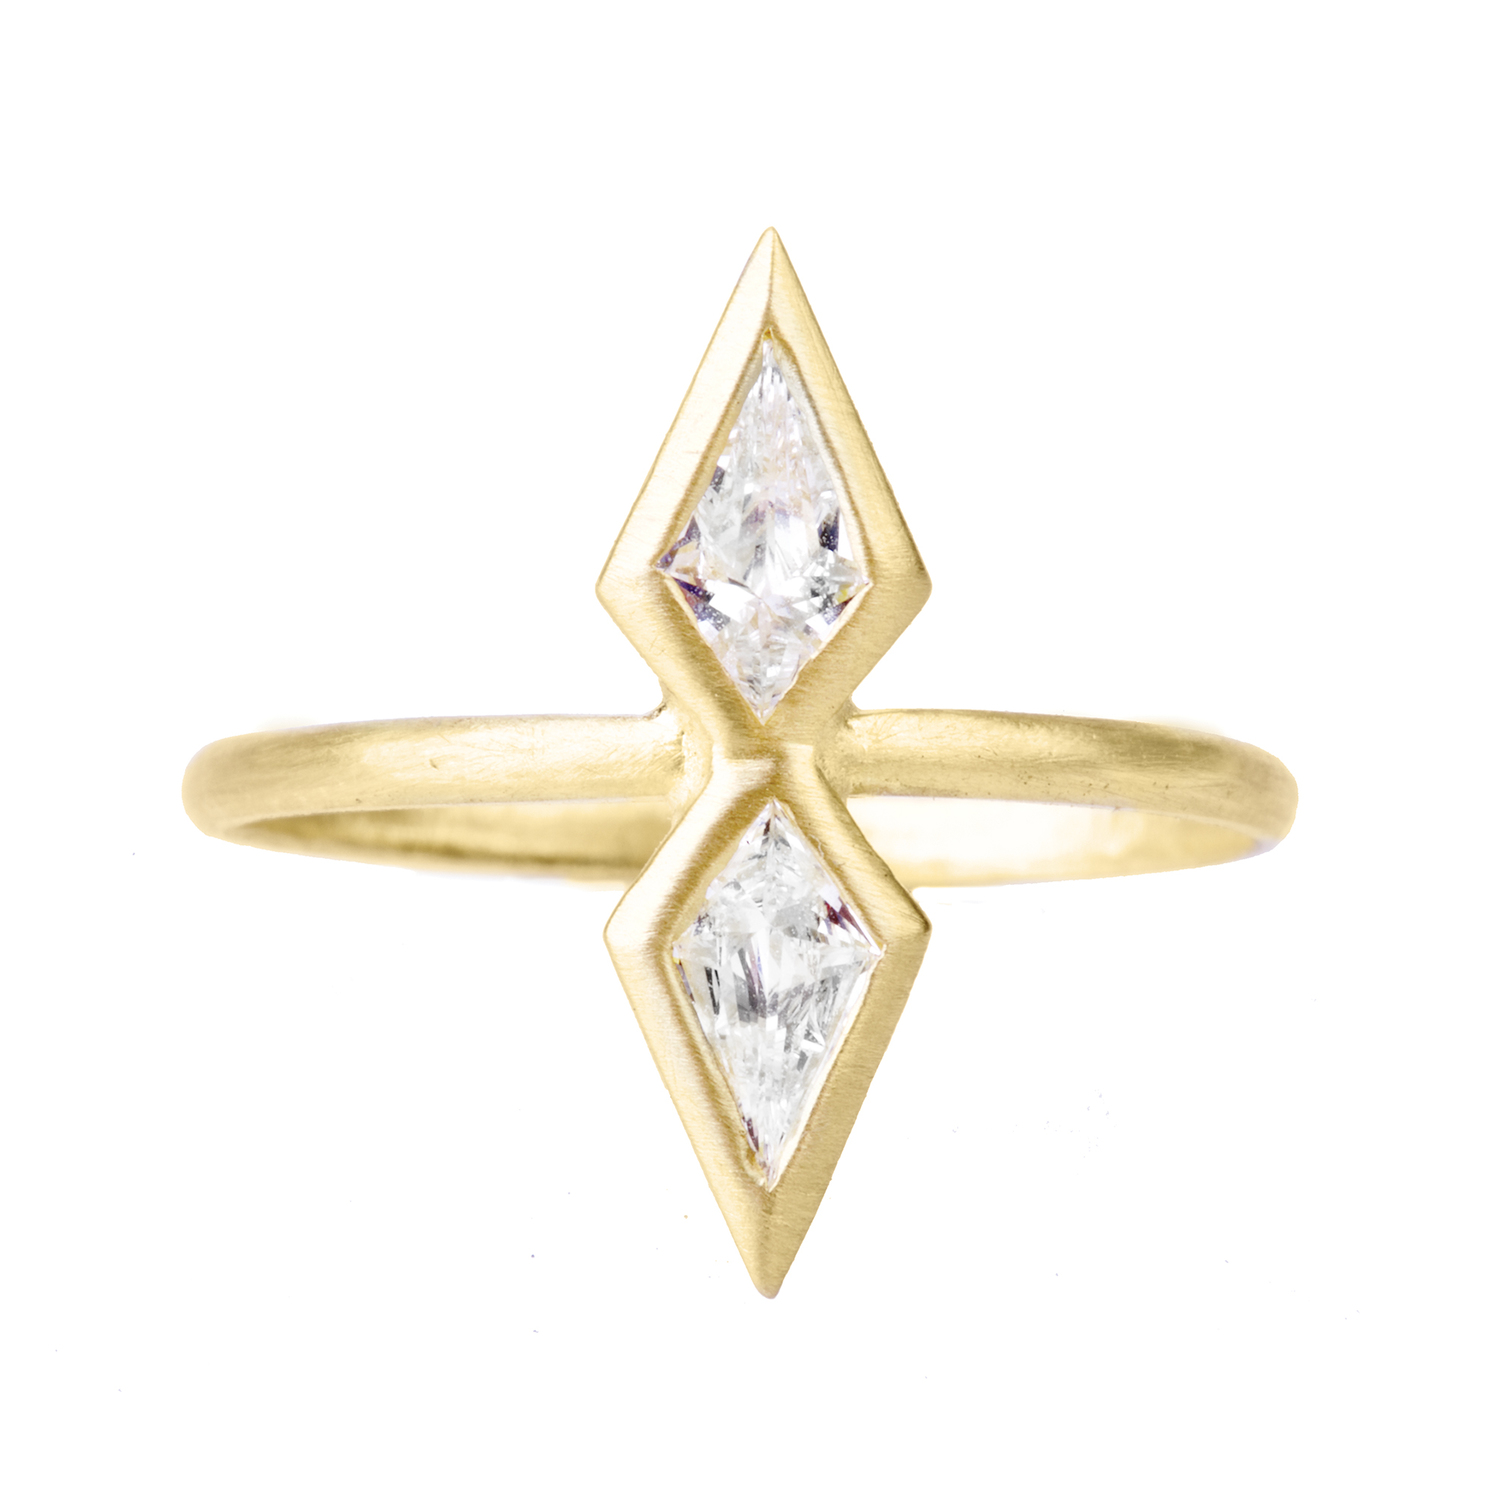 geometric yellow engagement copy of grey a diamond ring bridal carat halo collections clear recycled white products gold kite